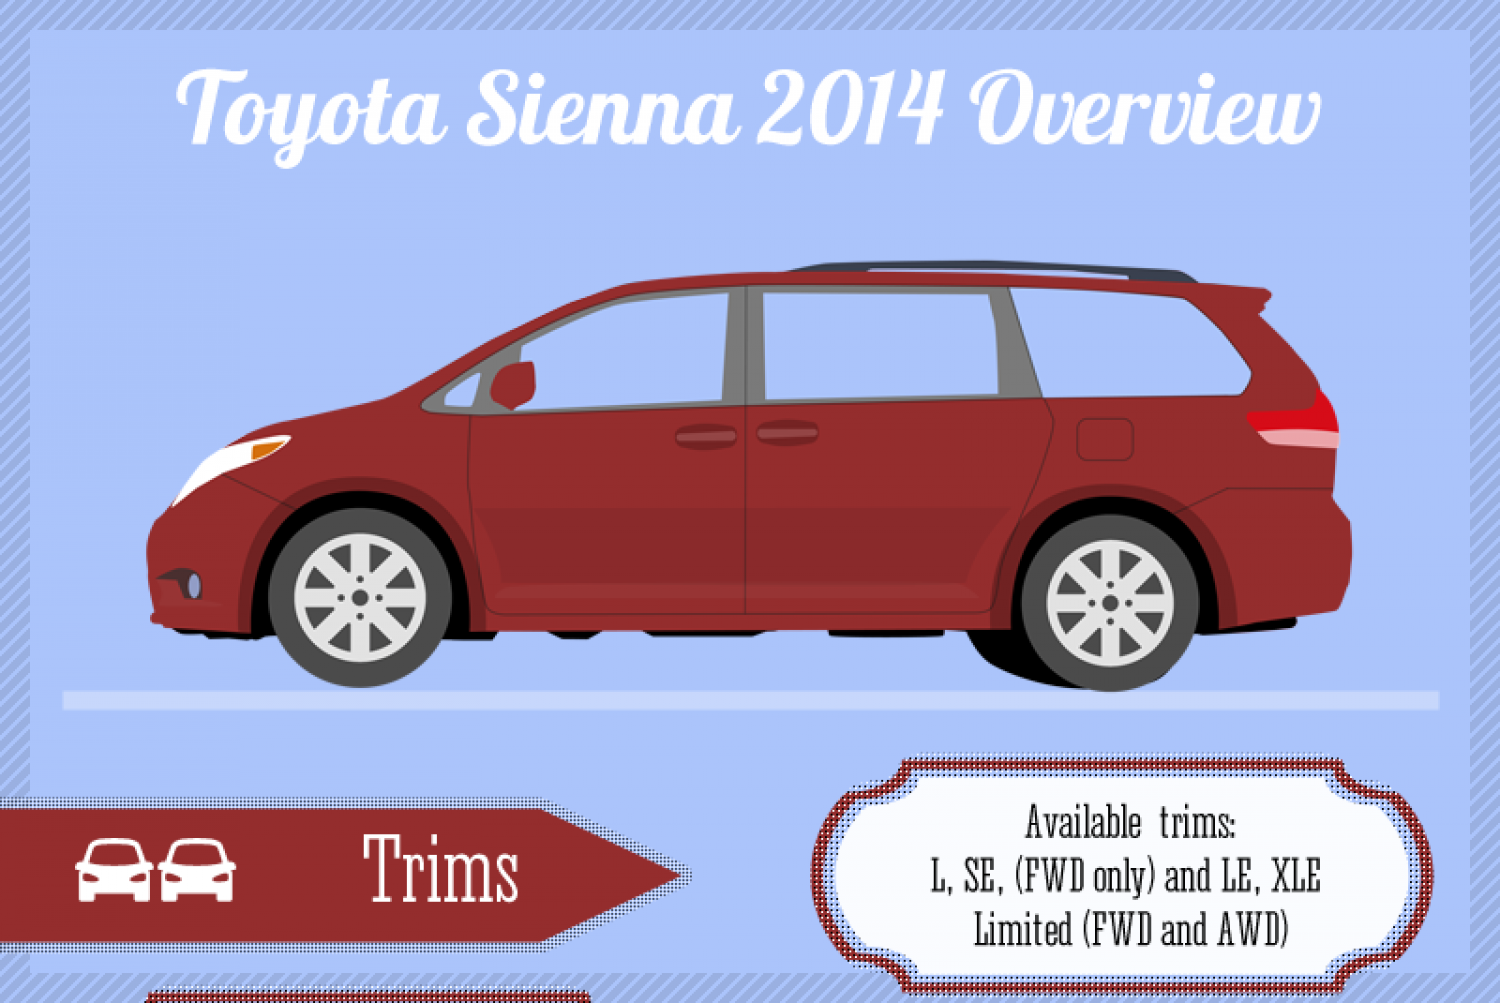 Toyota Sienna 2014 - Overview of the 8-Seater Minivan Infographic